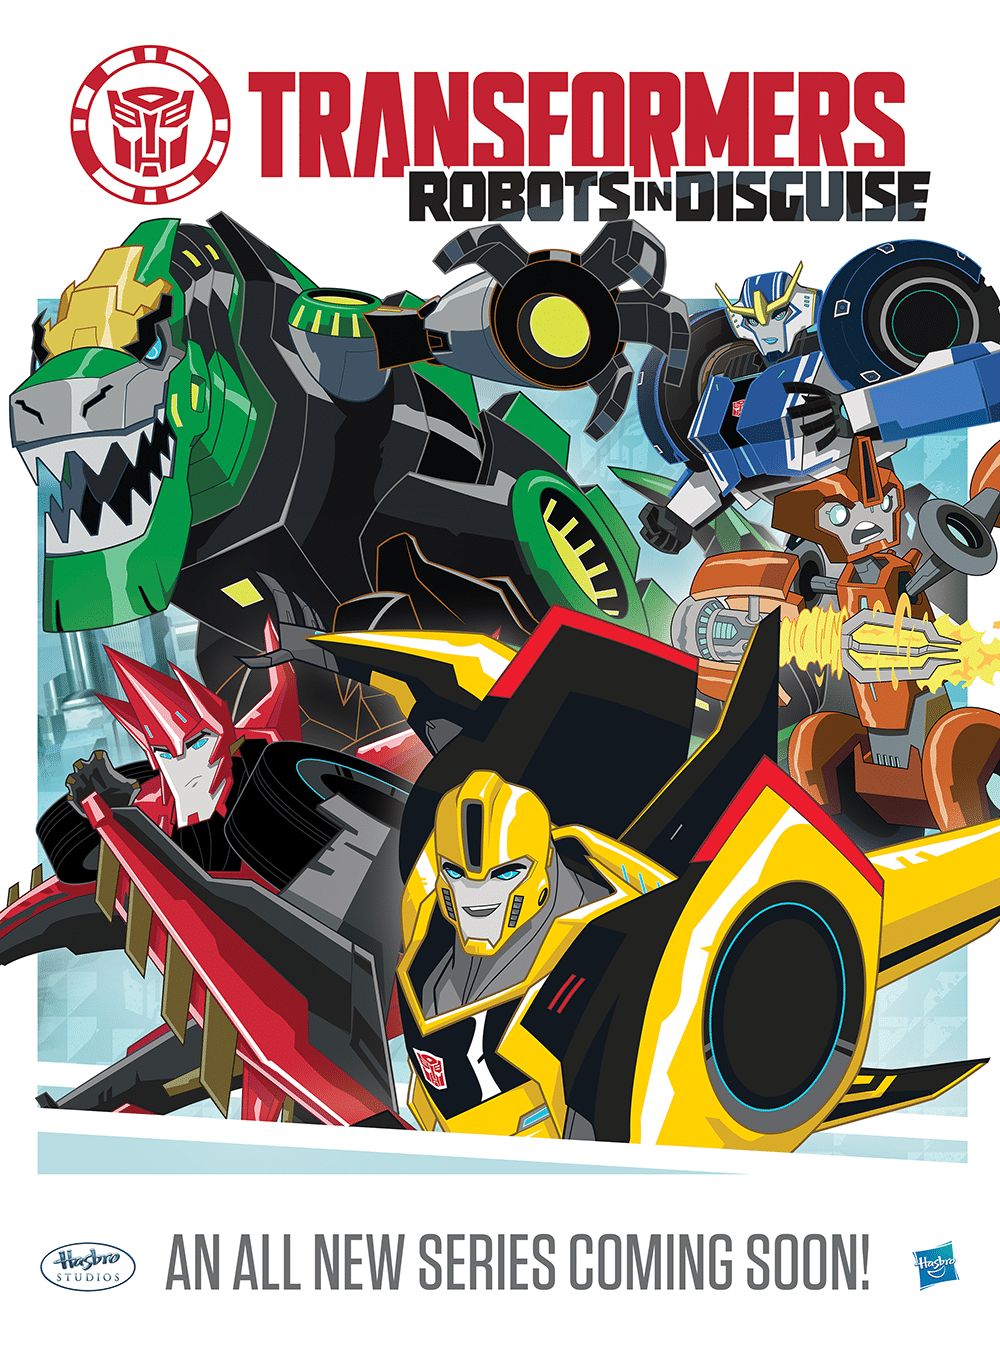 TRANSFORMERS: Robots in Disguise Premieres  Saturday, March 14 on Cartoon Network